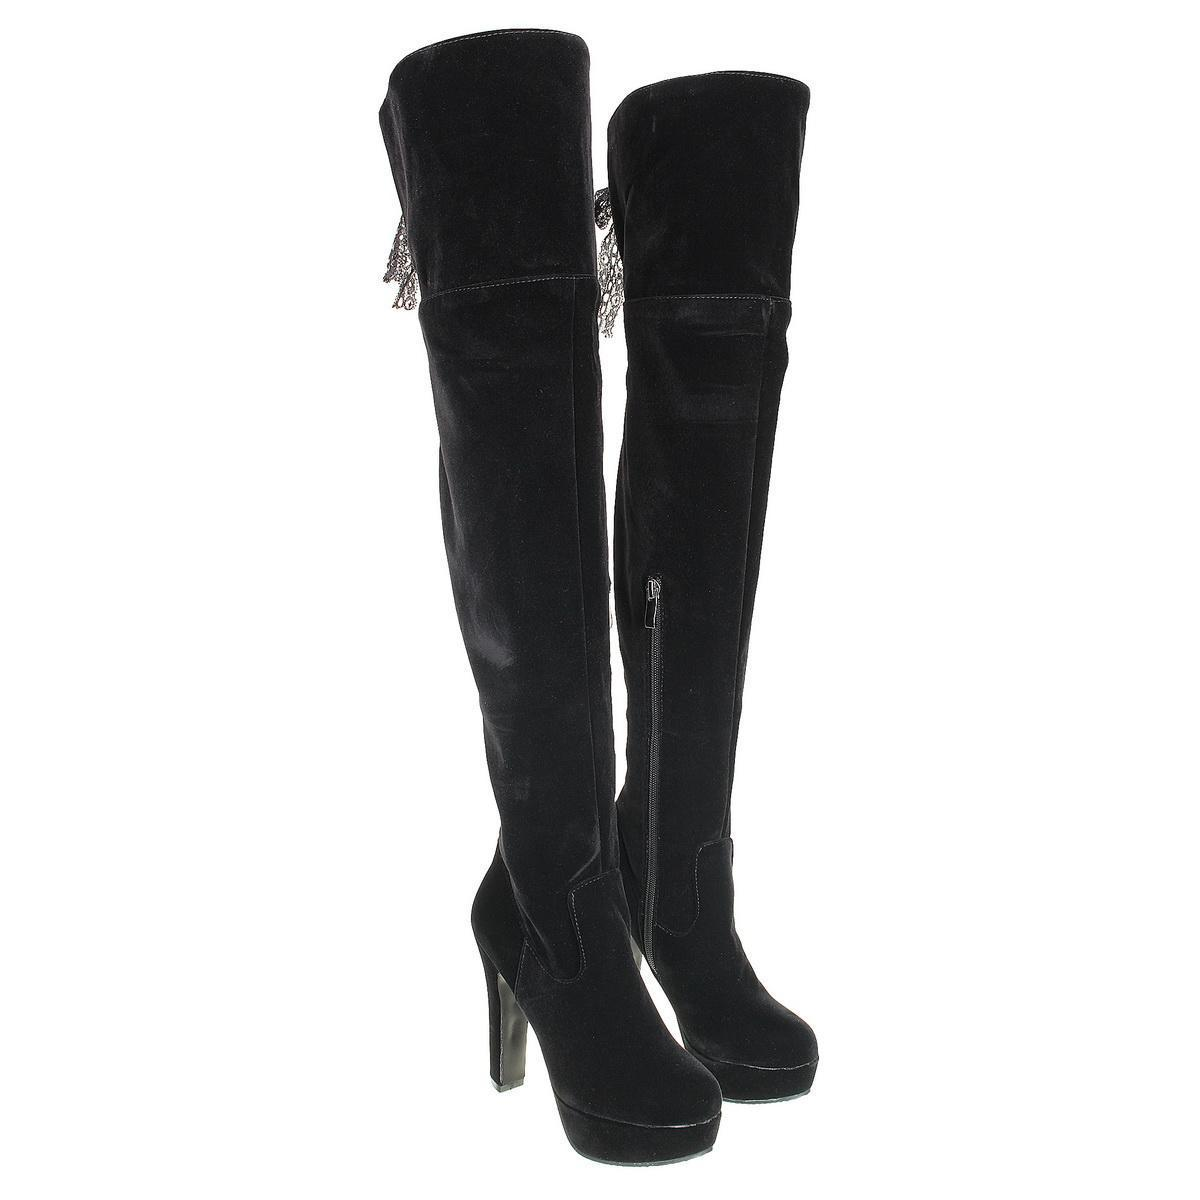 26e6c2a4239 Women's Zipper Over The Knee Thigh Boots Block High heel Round toe Shoes  New YT